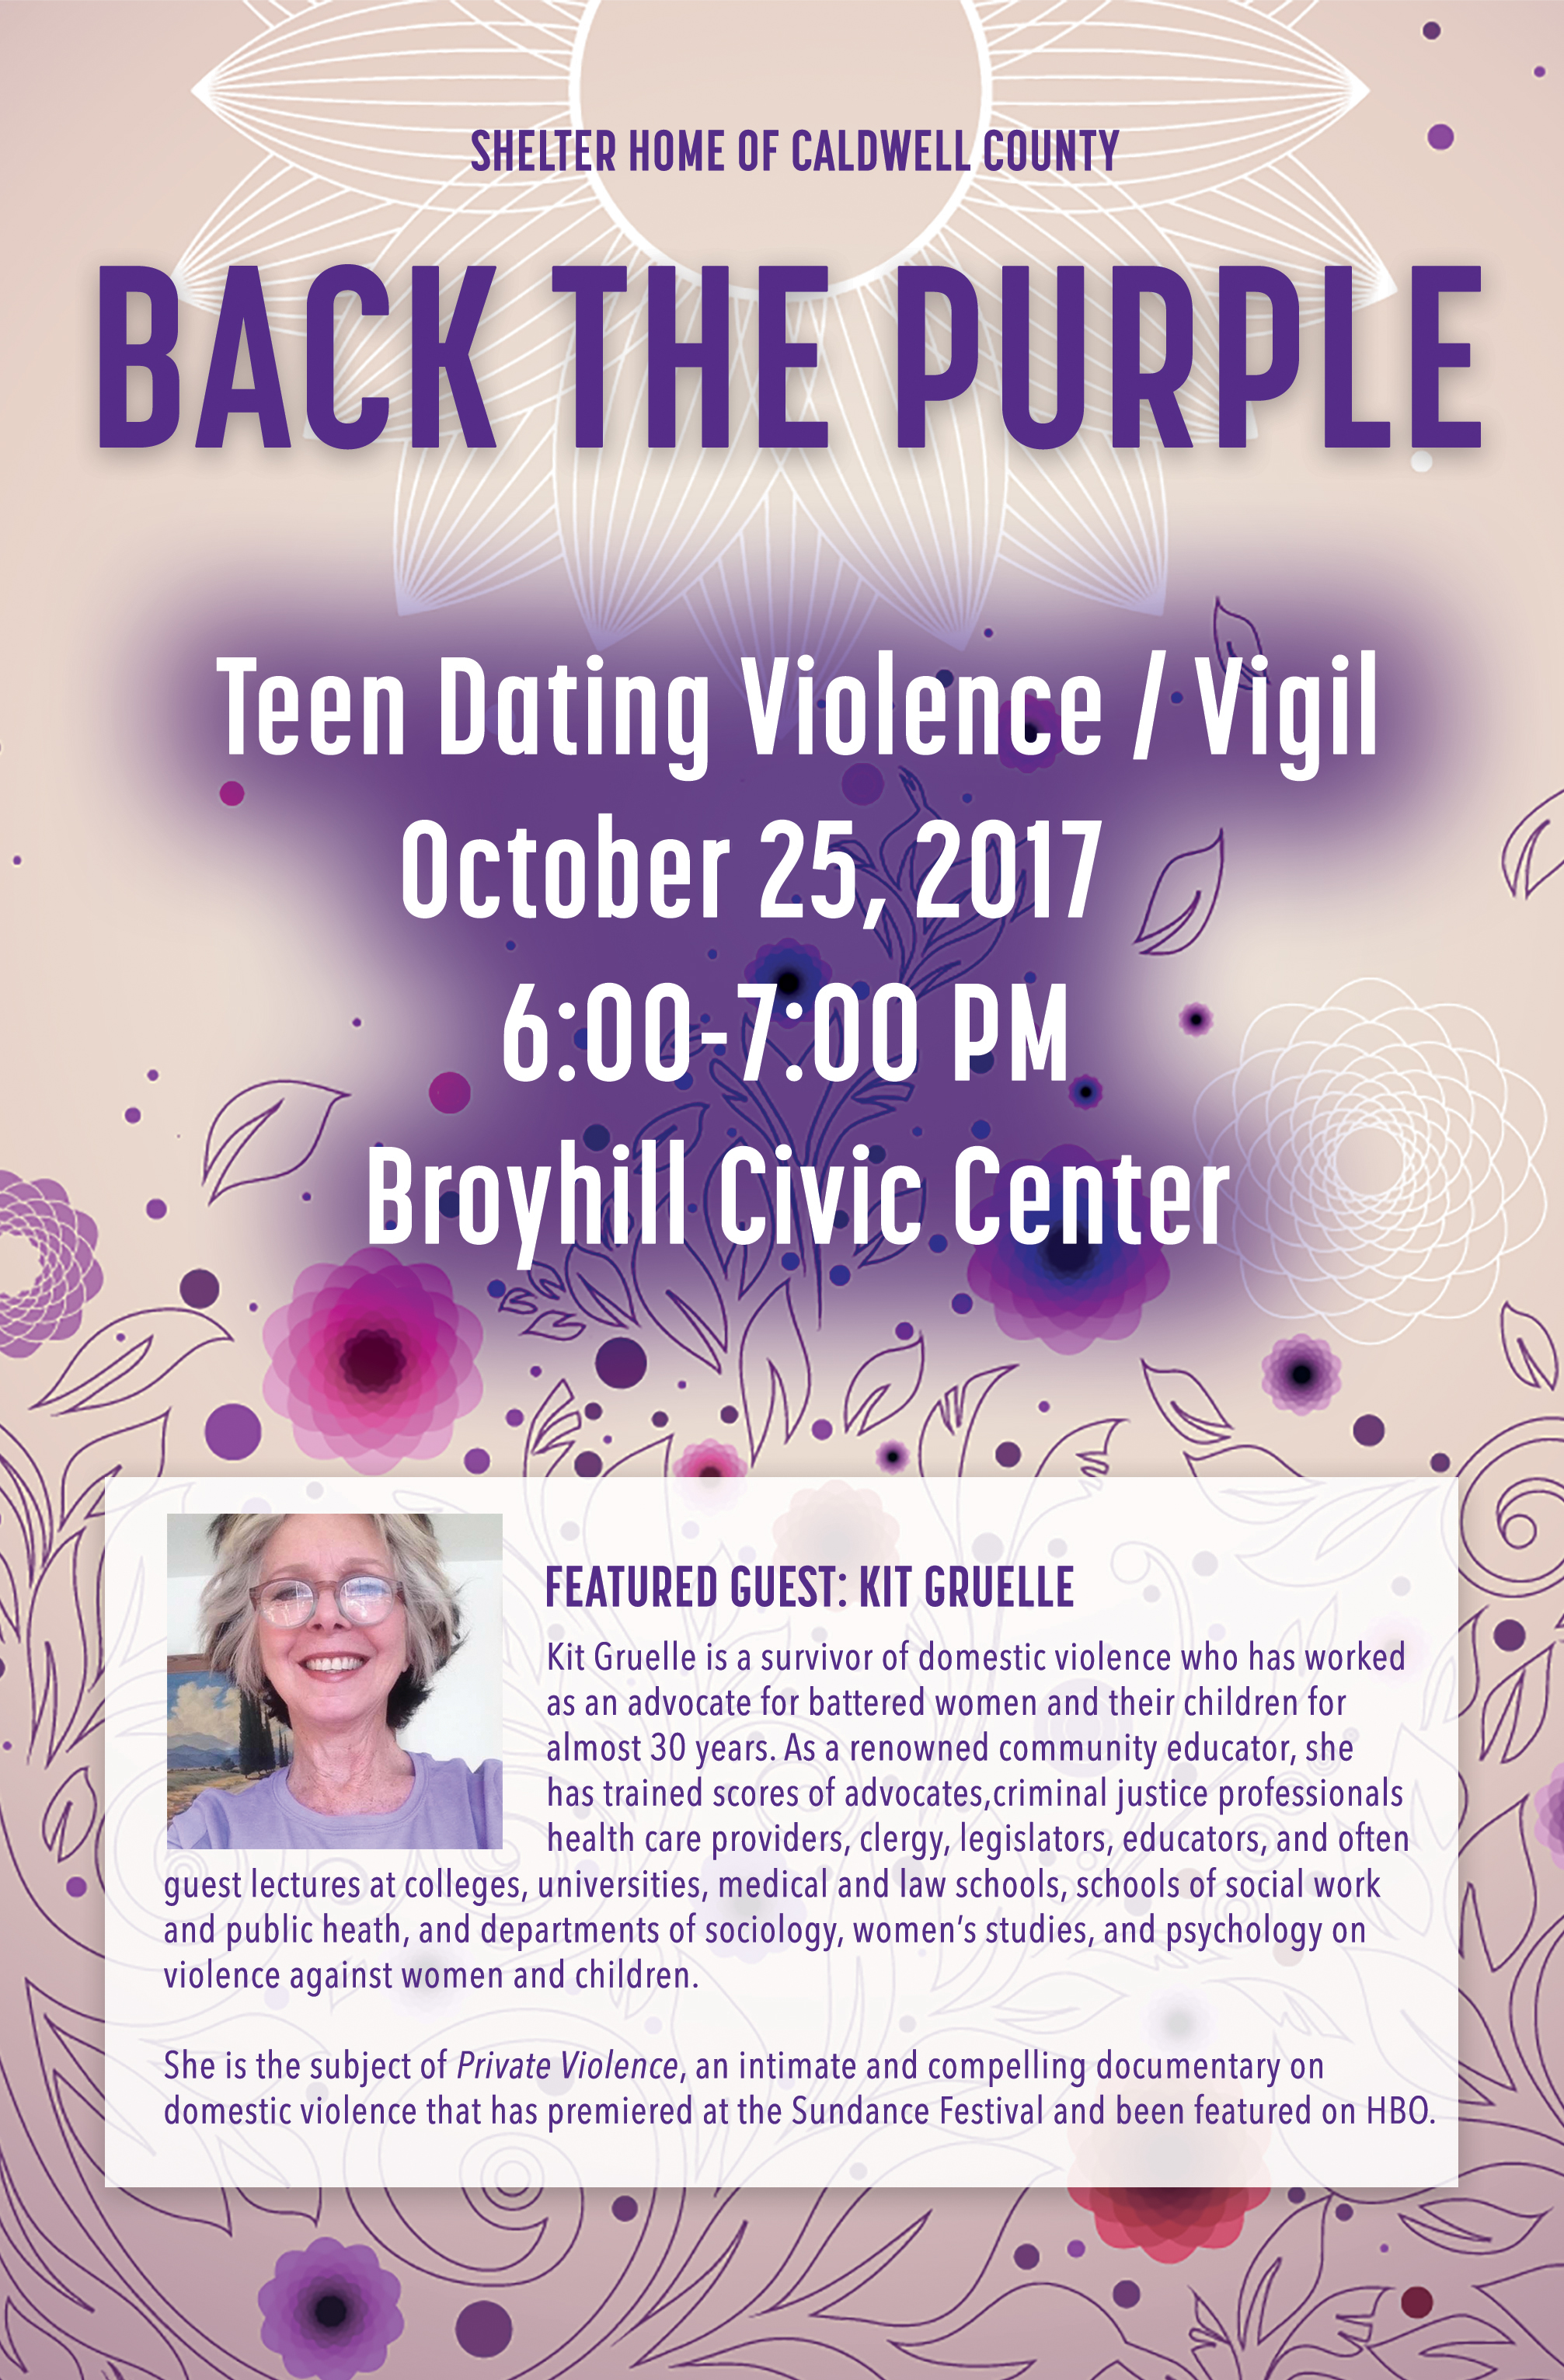 Back the Purple poster - Caldwell Cty.jpg